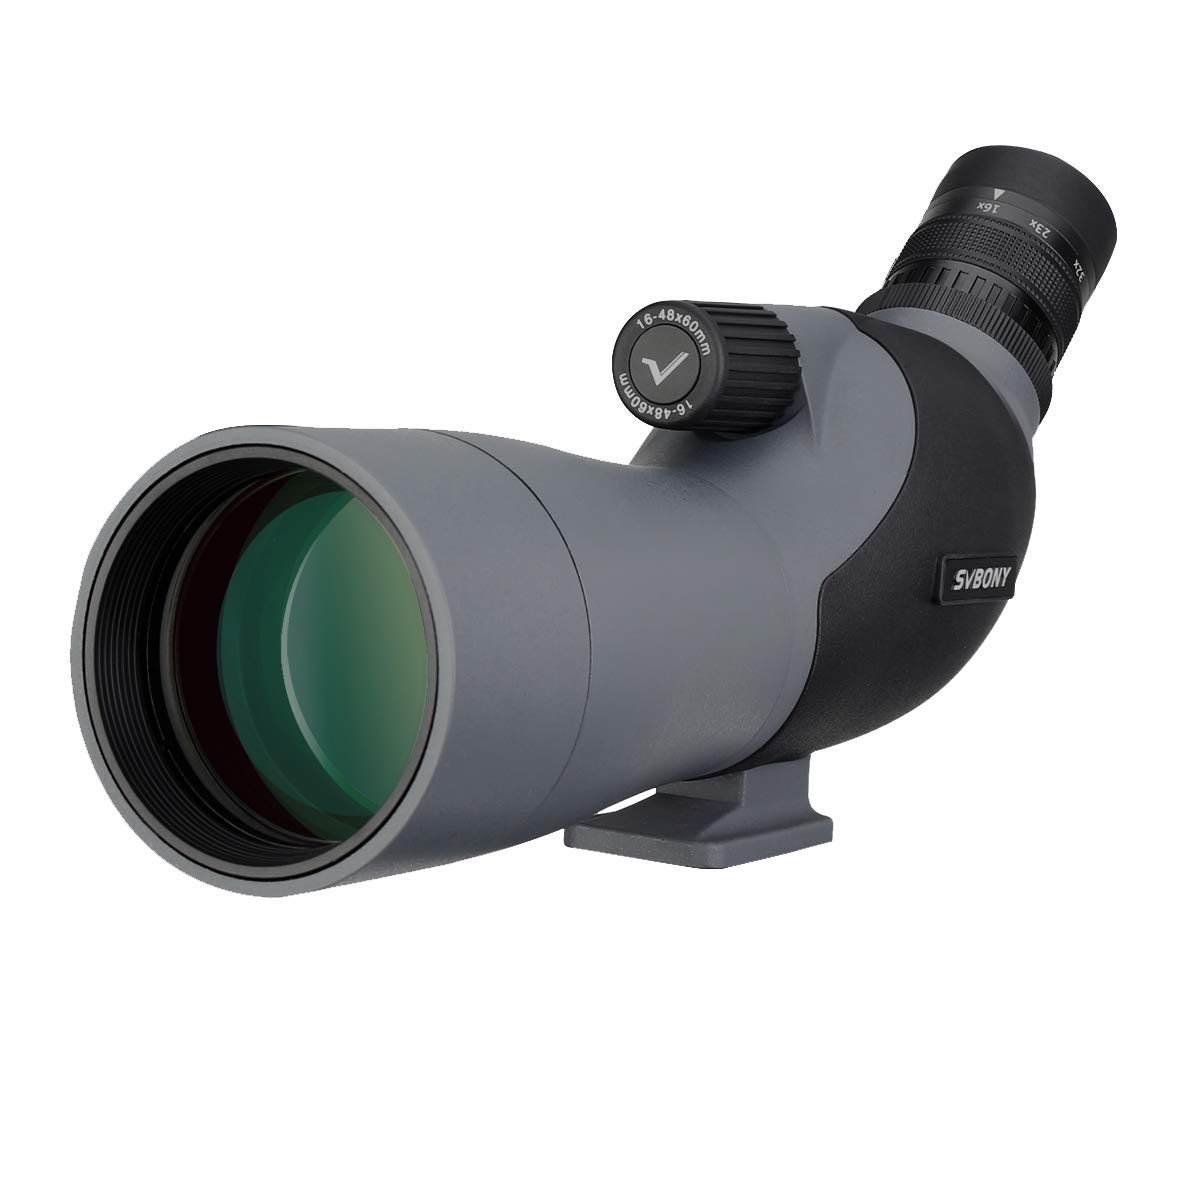 SVBONY SV402 Spotting Scope 16-48x60mm Waterproof Fully Multi-coated Optics for Bird Watching Target Shooting Hunting with Soft Case Easy to Carry by SVBONY